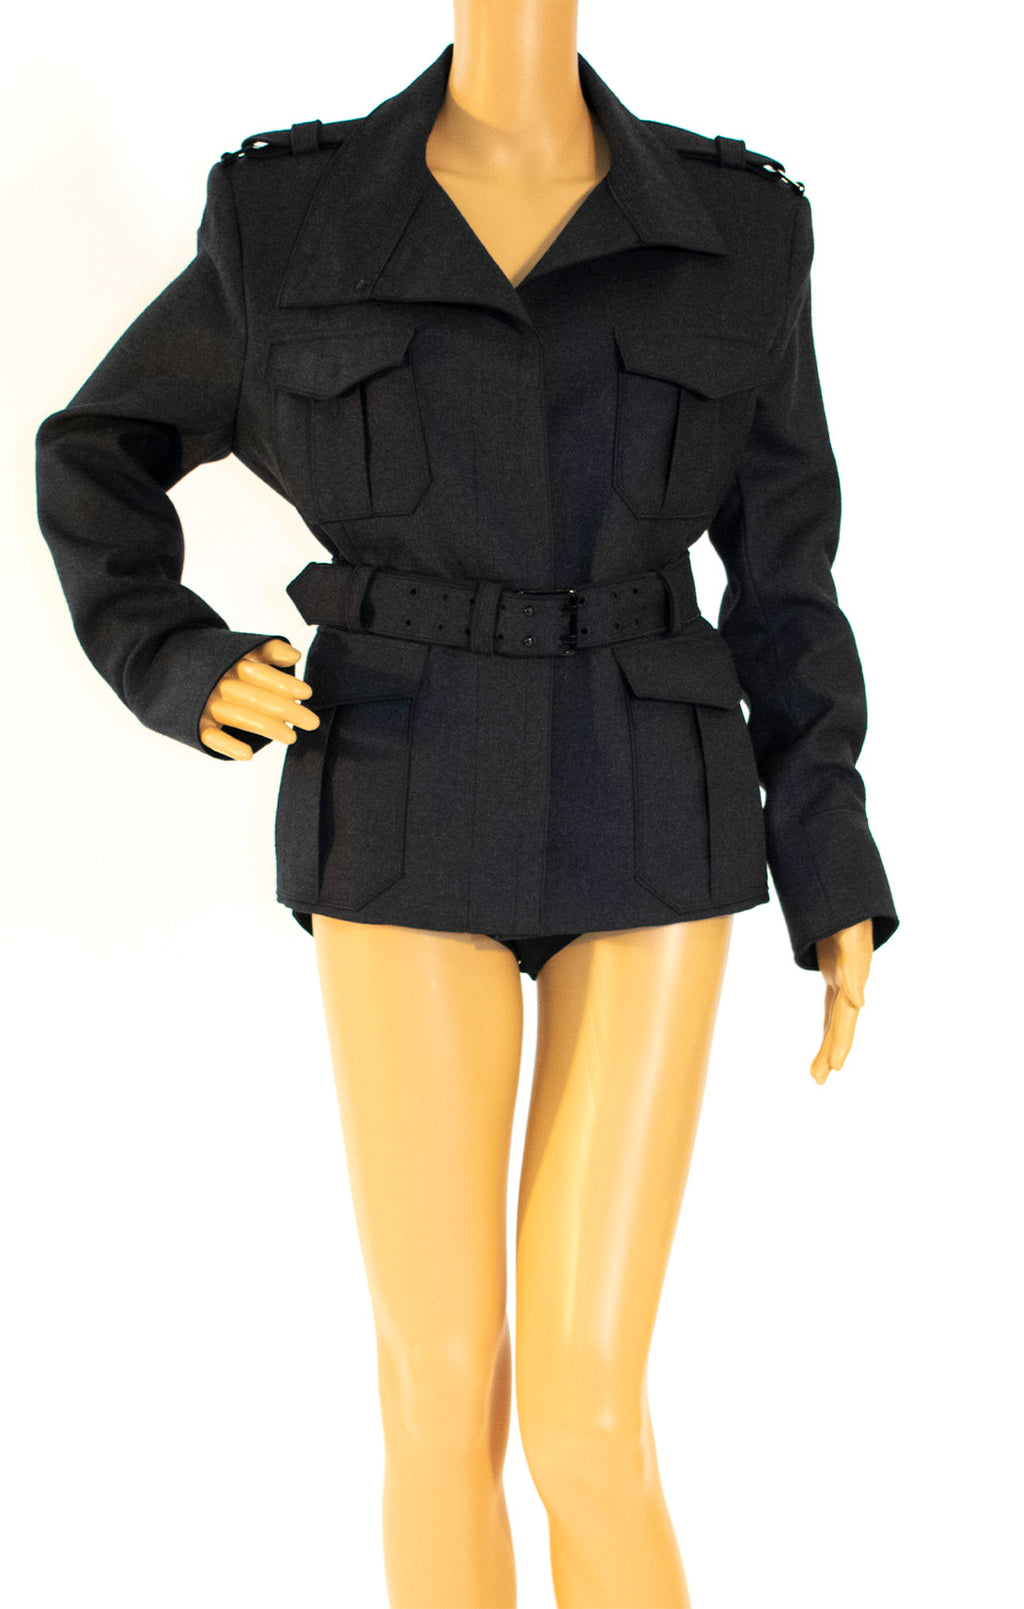 Front view of TOM FORD Jacket Size: IT 46 (comparable to US 10)